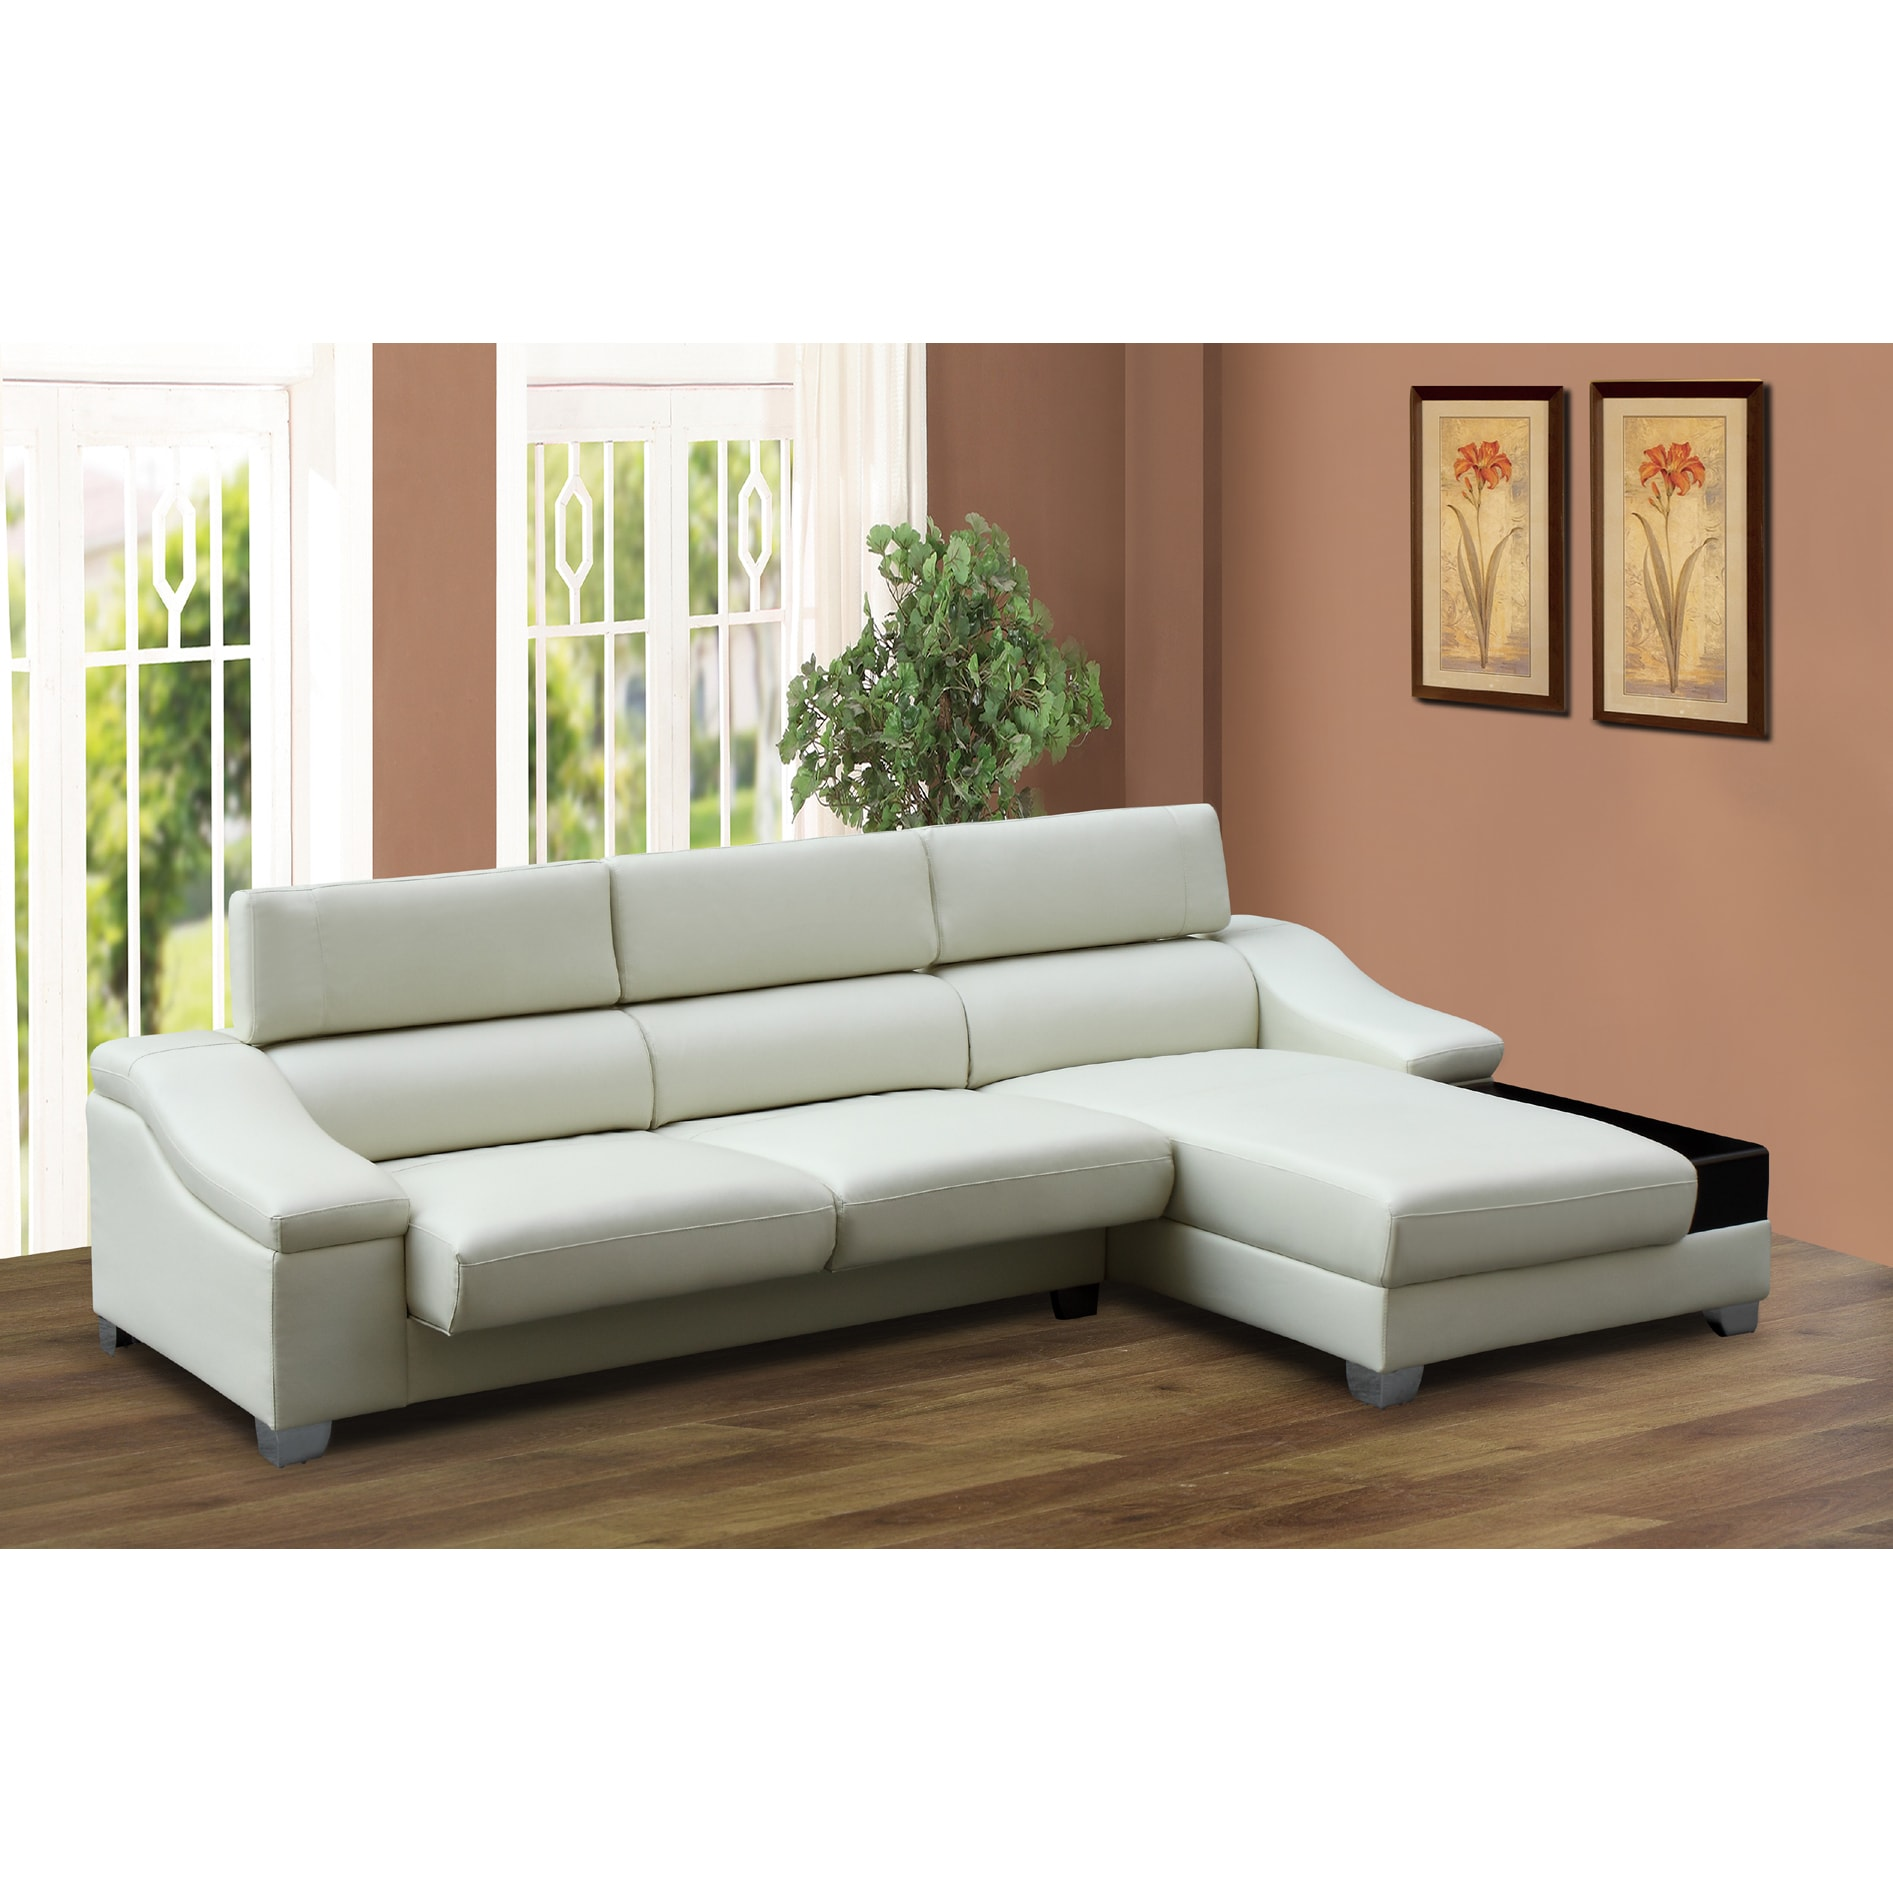 New Miller 2 piece Ivory Modern Bonded Leather Sectional sofa Set